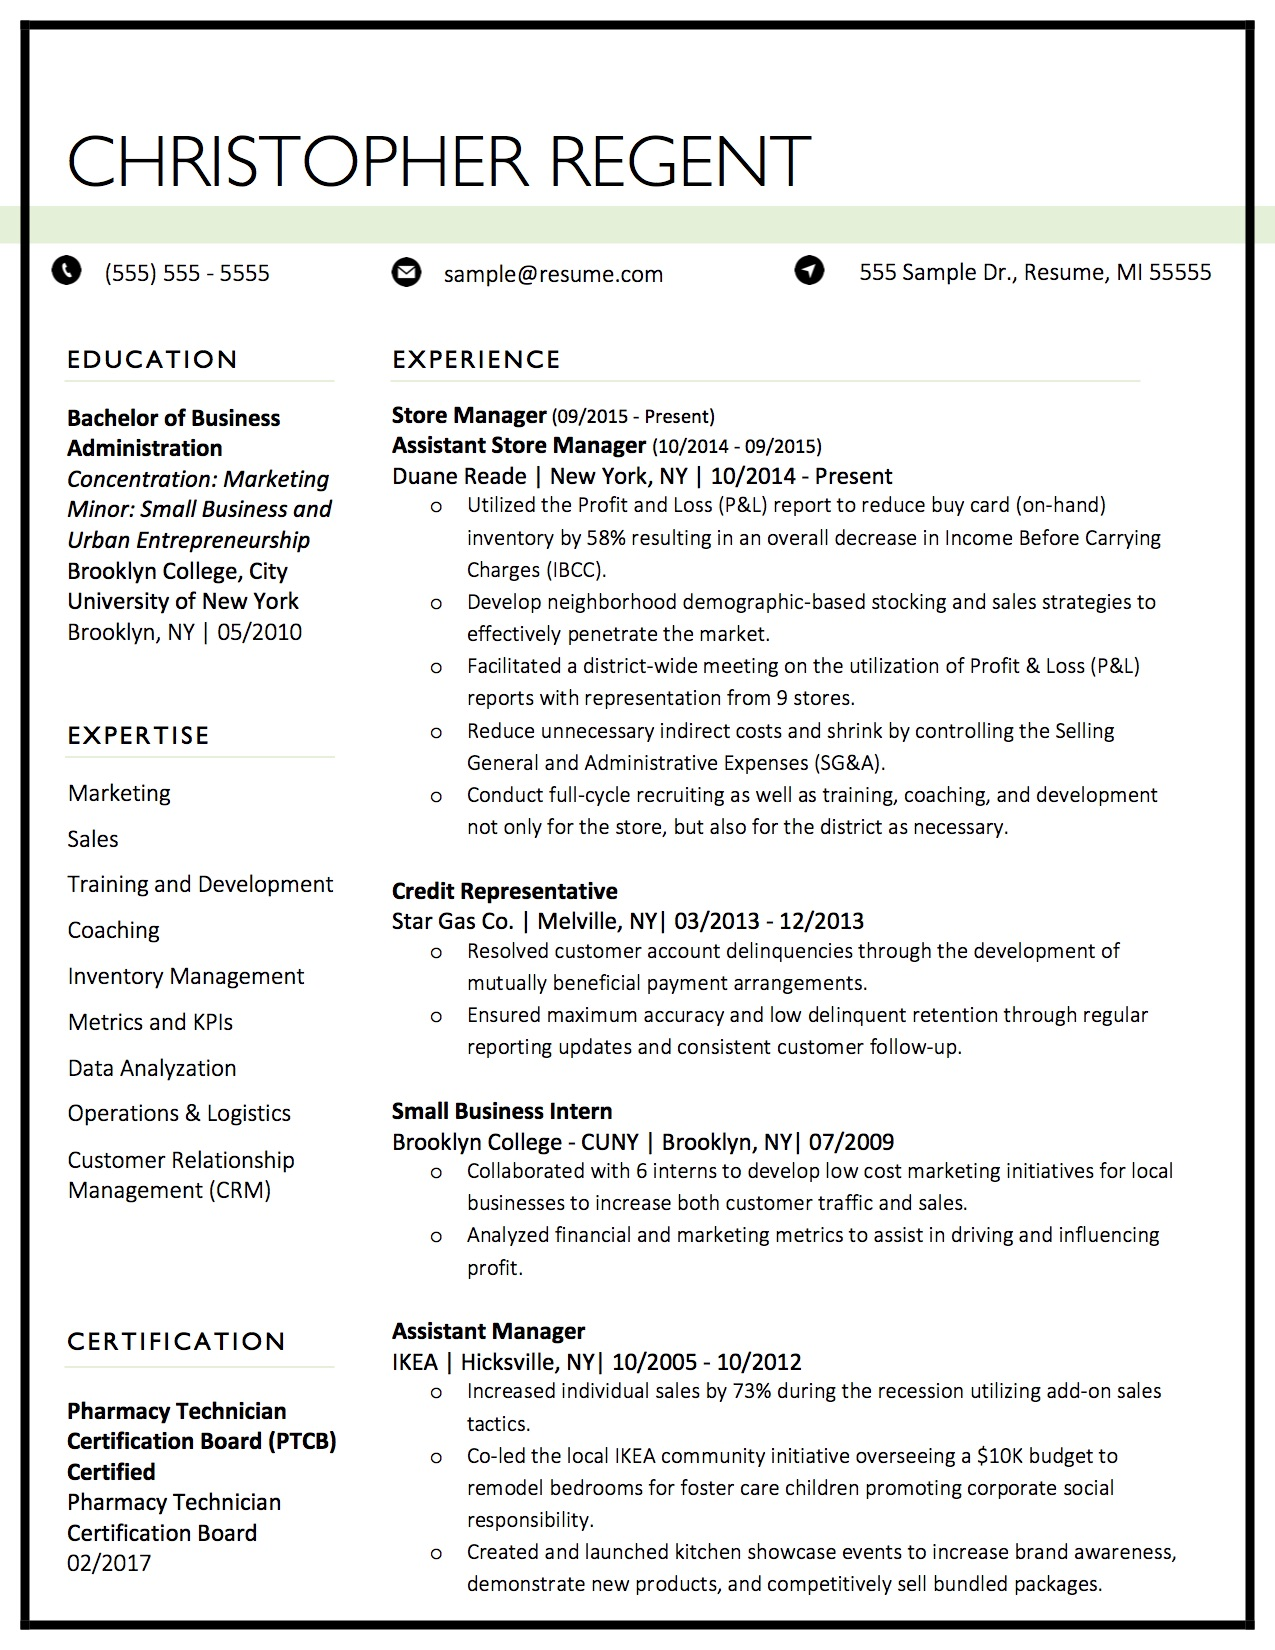 Client Resume #20. Click to enlarge